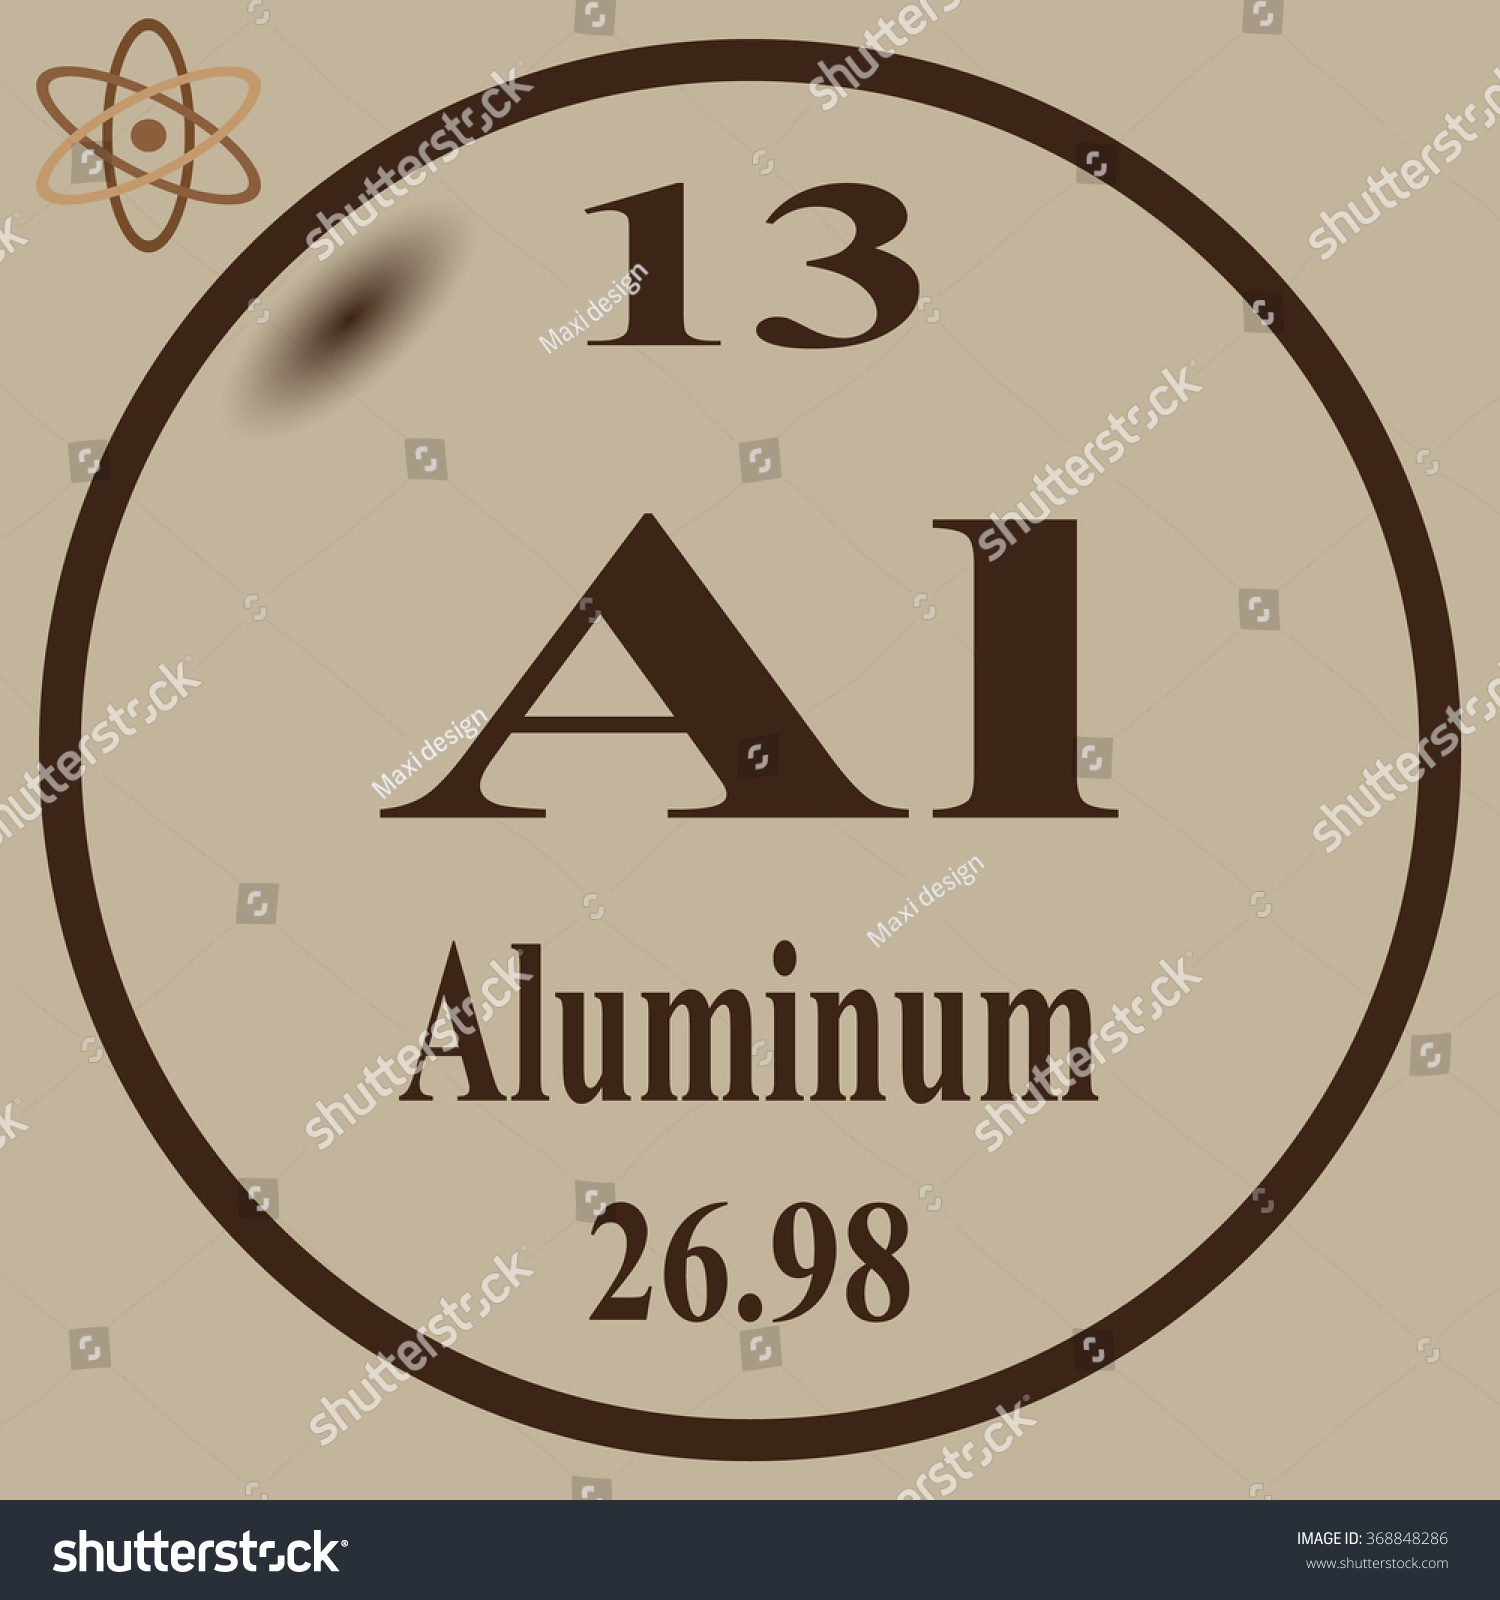 Uh periodic table gallery periodic table images uh periodic table images periodic table images uh periodic table image collections periodic table images uh gamestrikefo Image collections